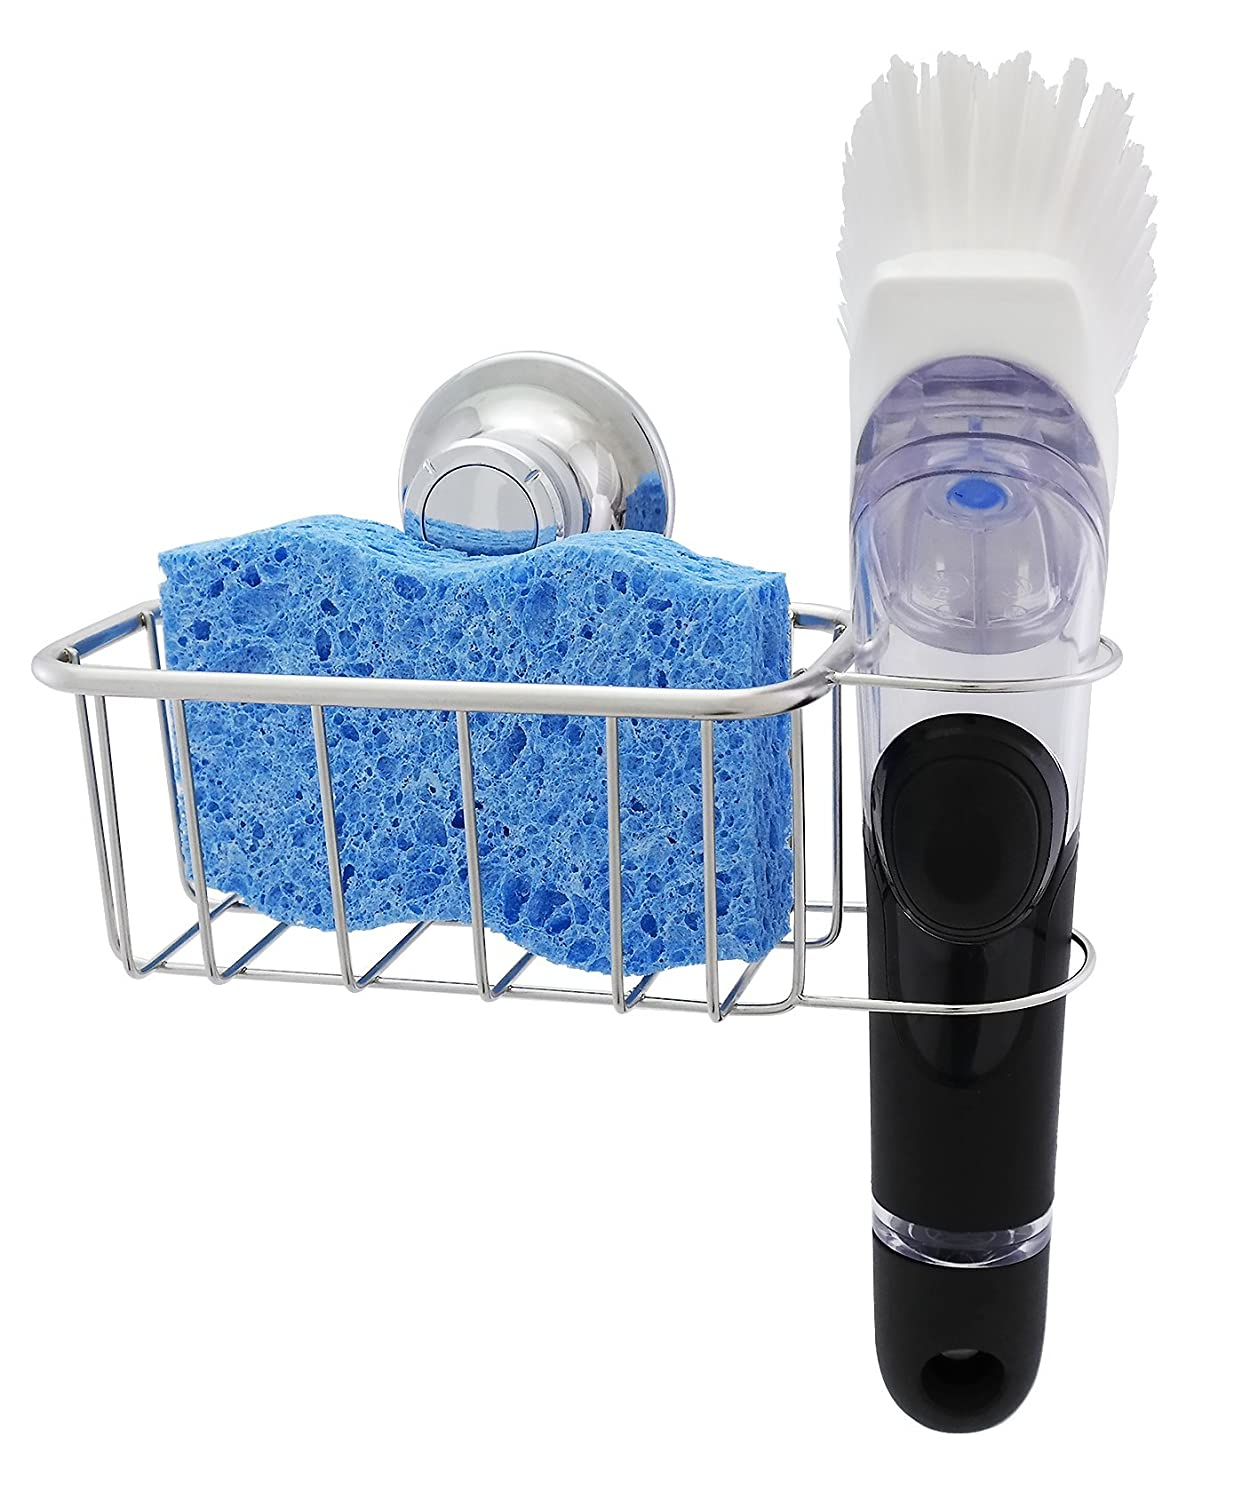 Amazon.com: The Crown Choice PATENTED Suction Kitchen Sponge Holder ...